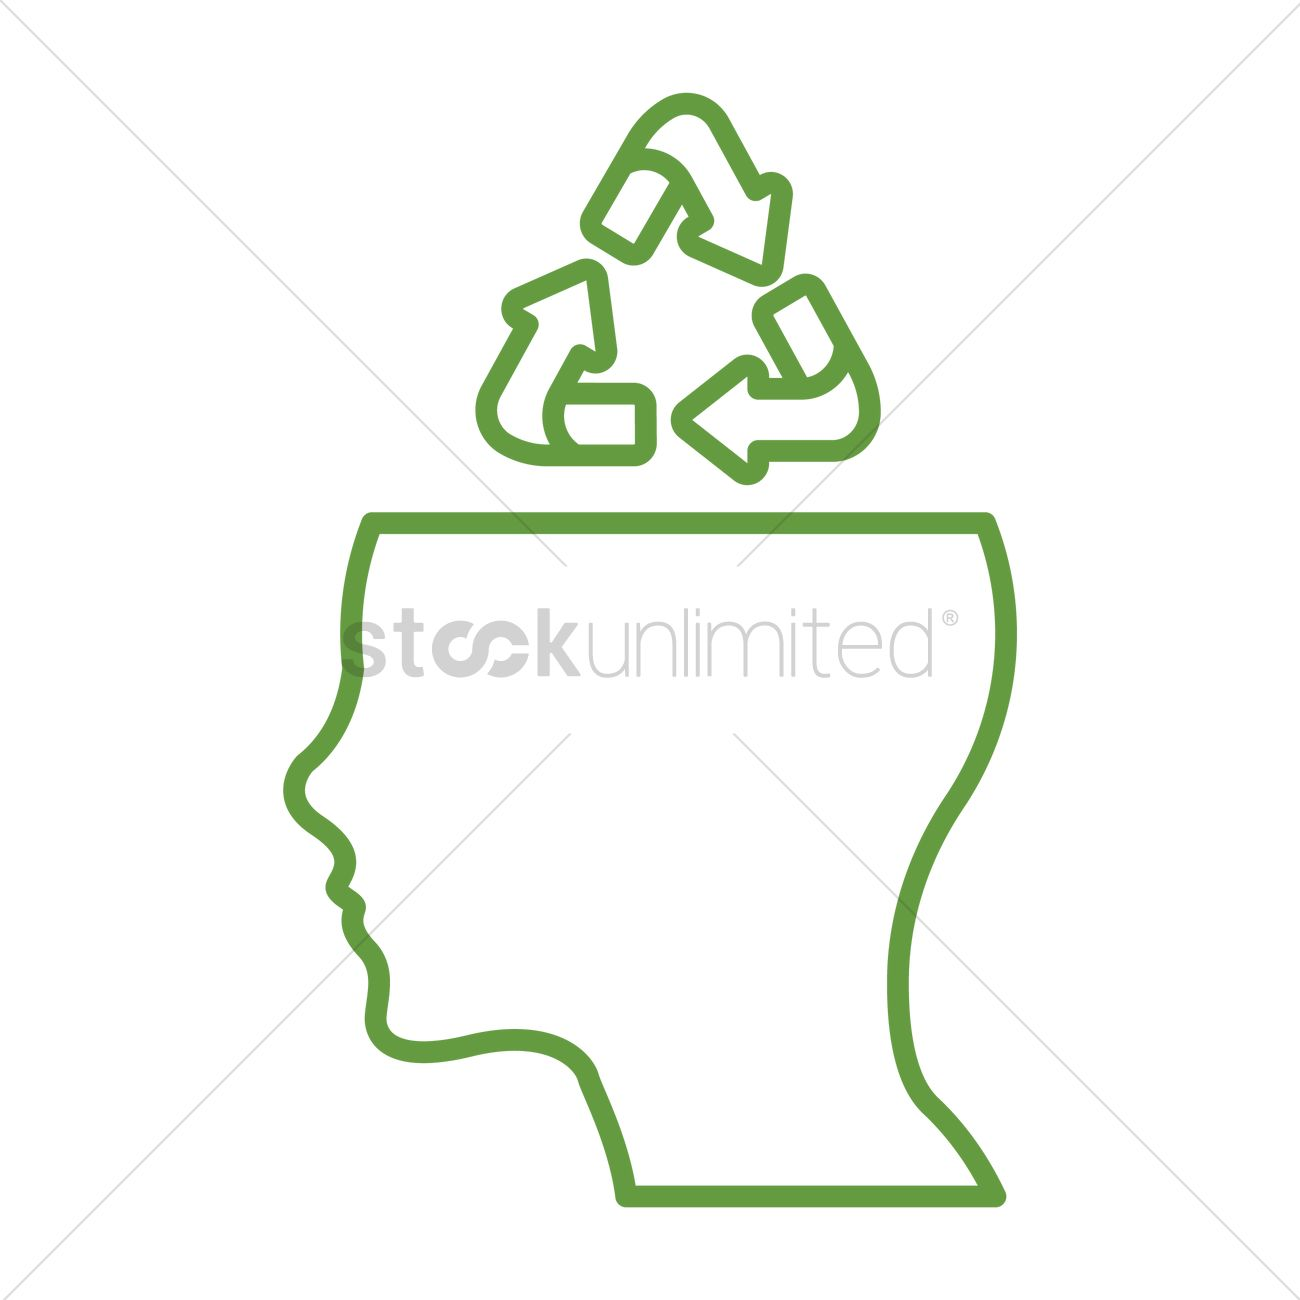 Open Mind With Recycle Symbol Vector Image 1647716 Stockunlimited